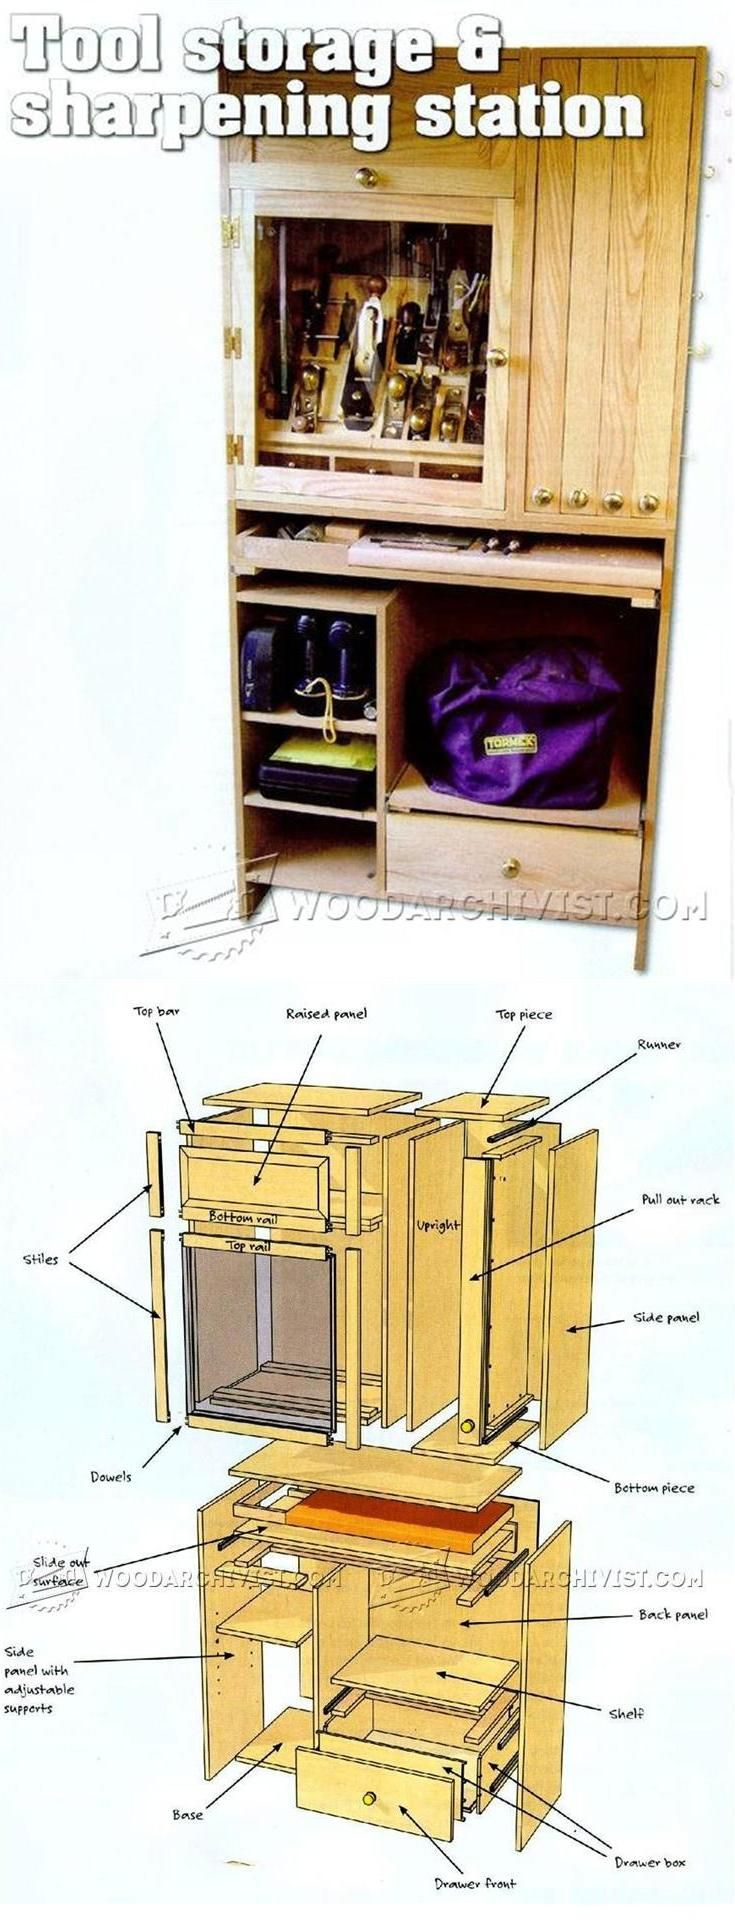 Tool Storage and Sharpening Station Plans - Workshop Solutions Projects, Tips and Tricks | WoodArchivist.com